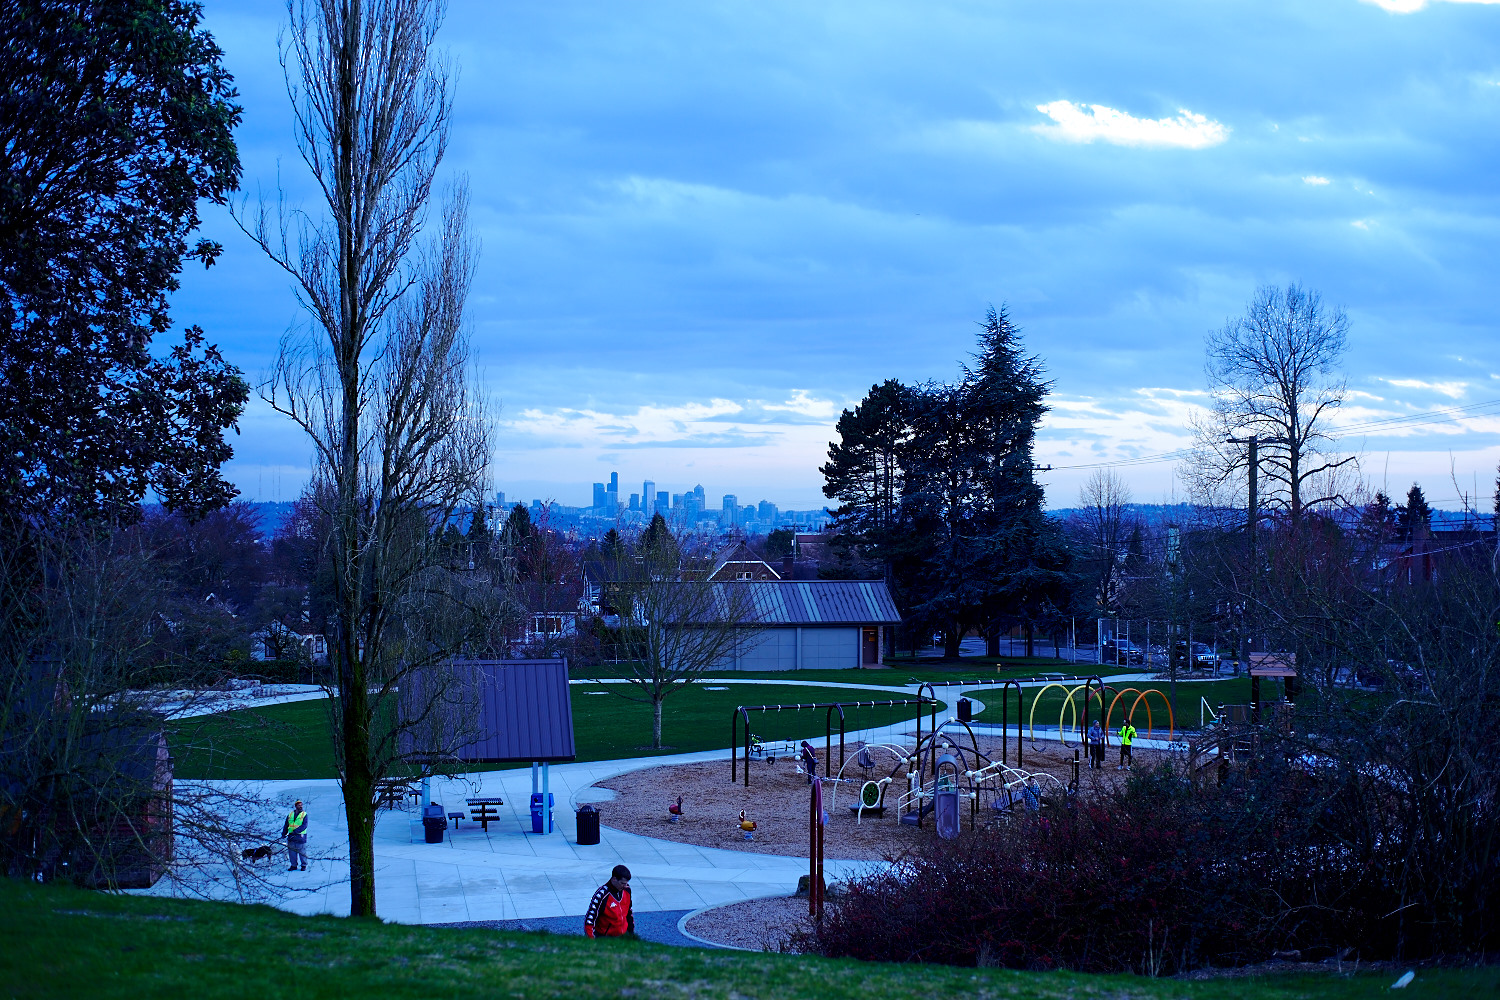 Water Reservoir Park can actually see the skyline from downtown Seattle :)